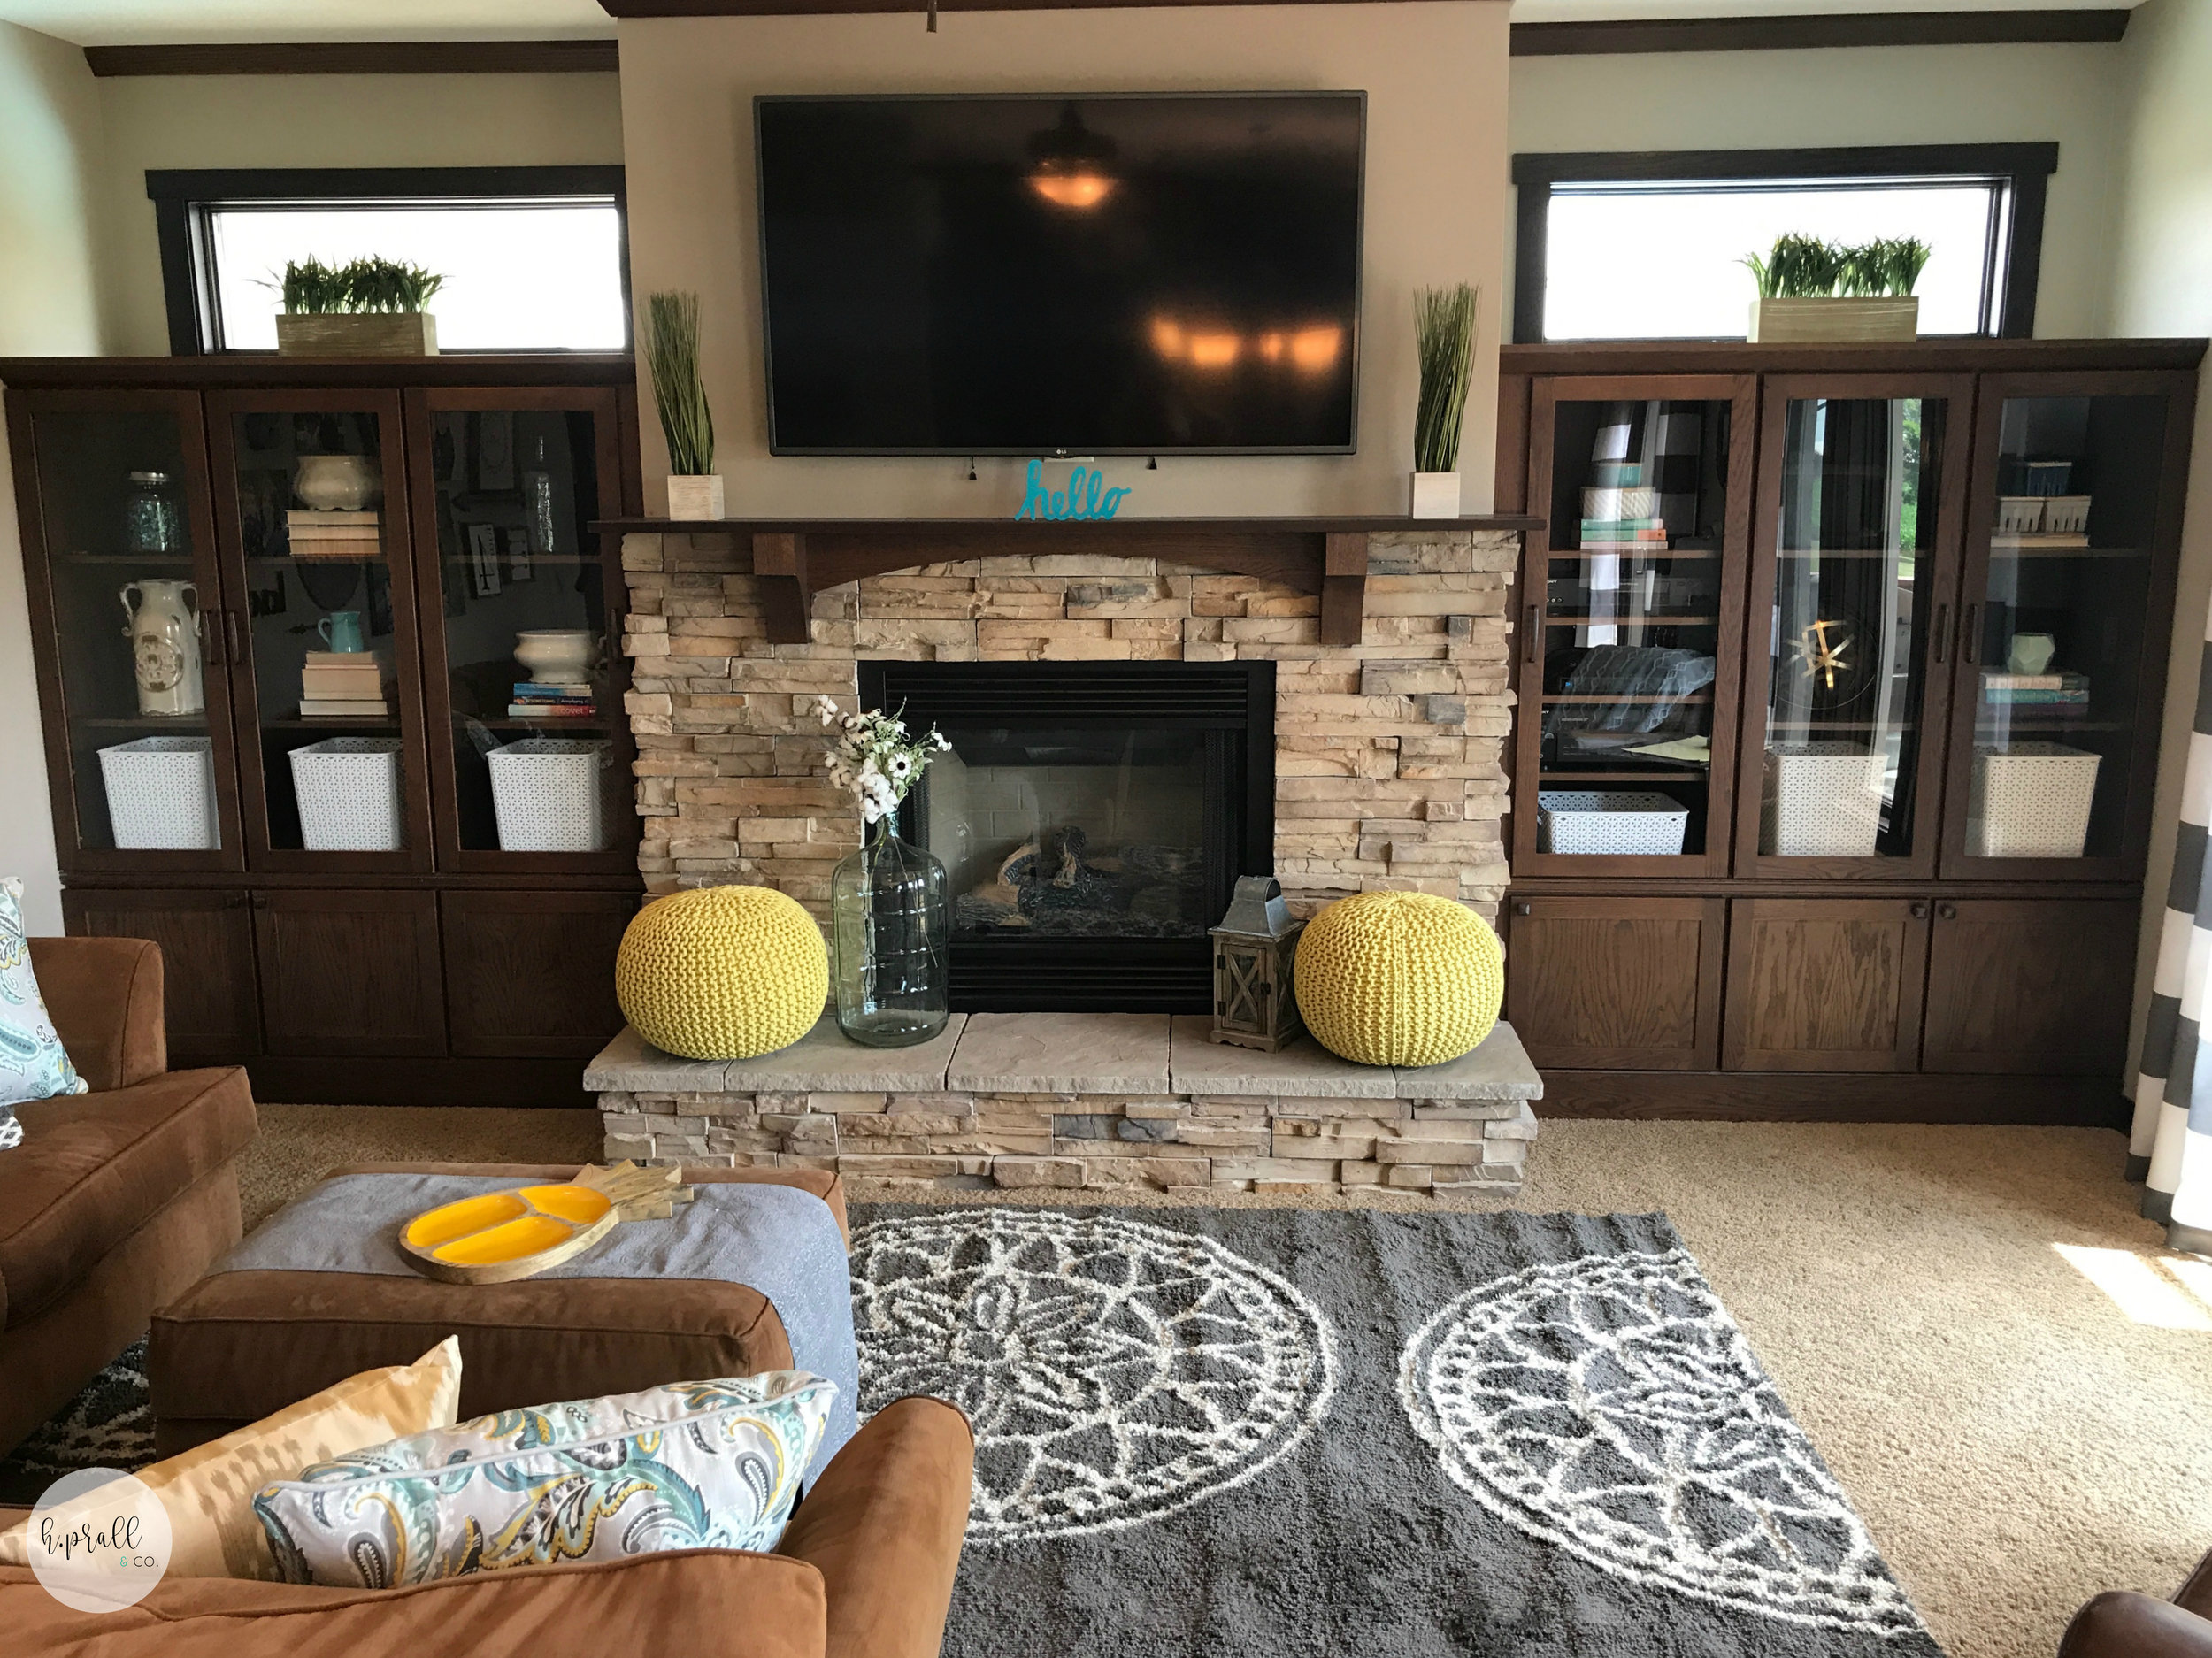 Living room design with yellow poofs, and a gray area rug from  H.Prall and Co.